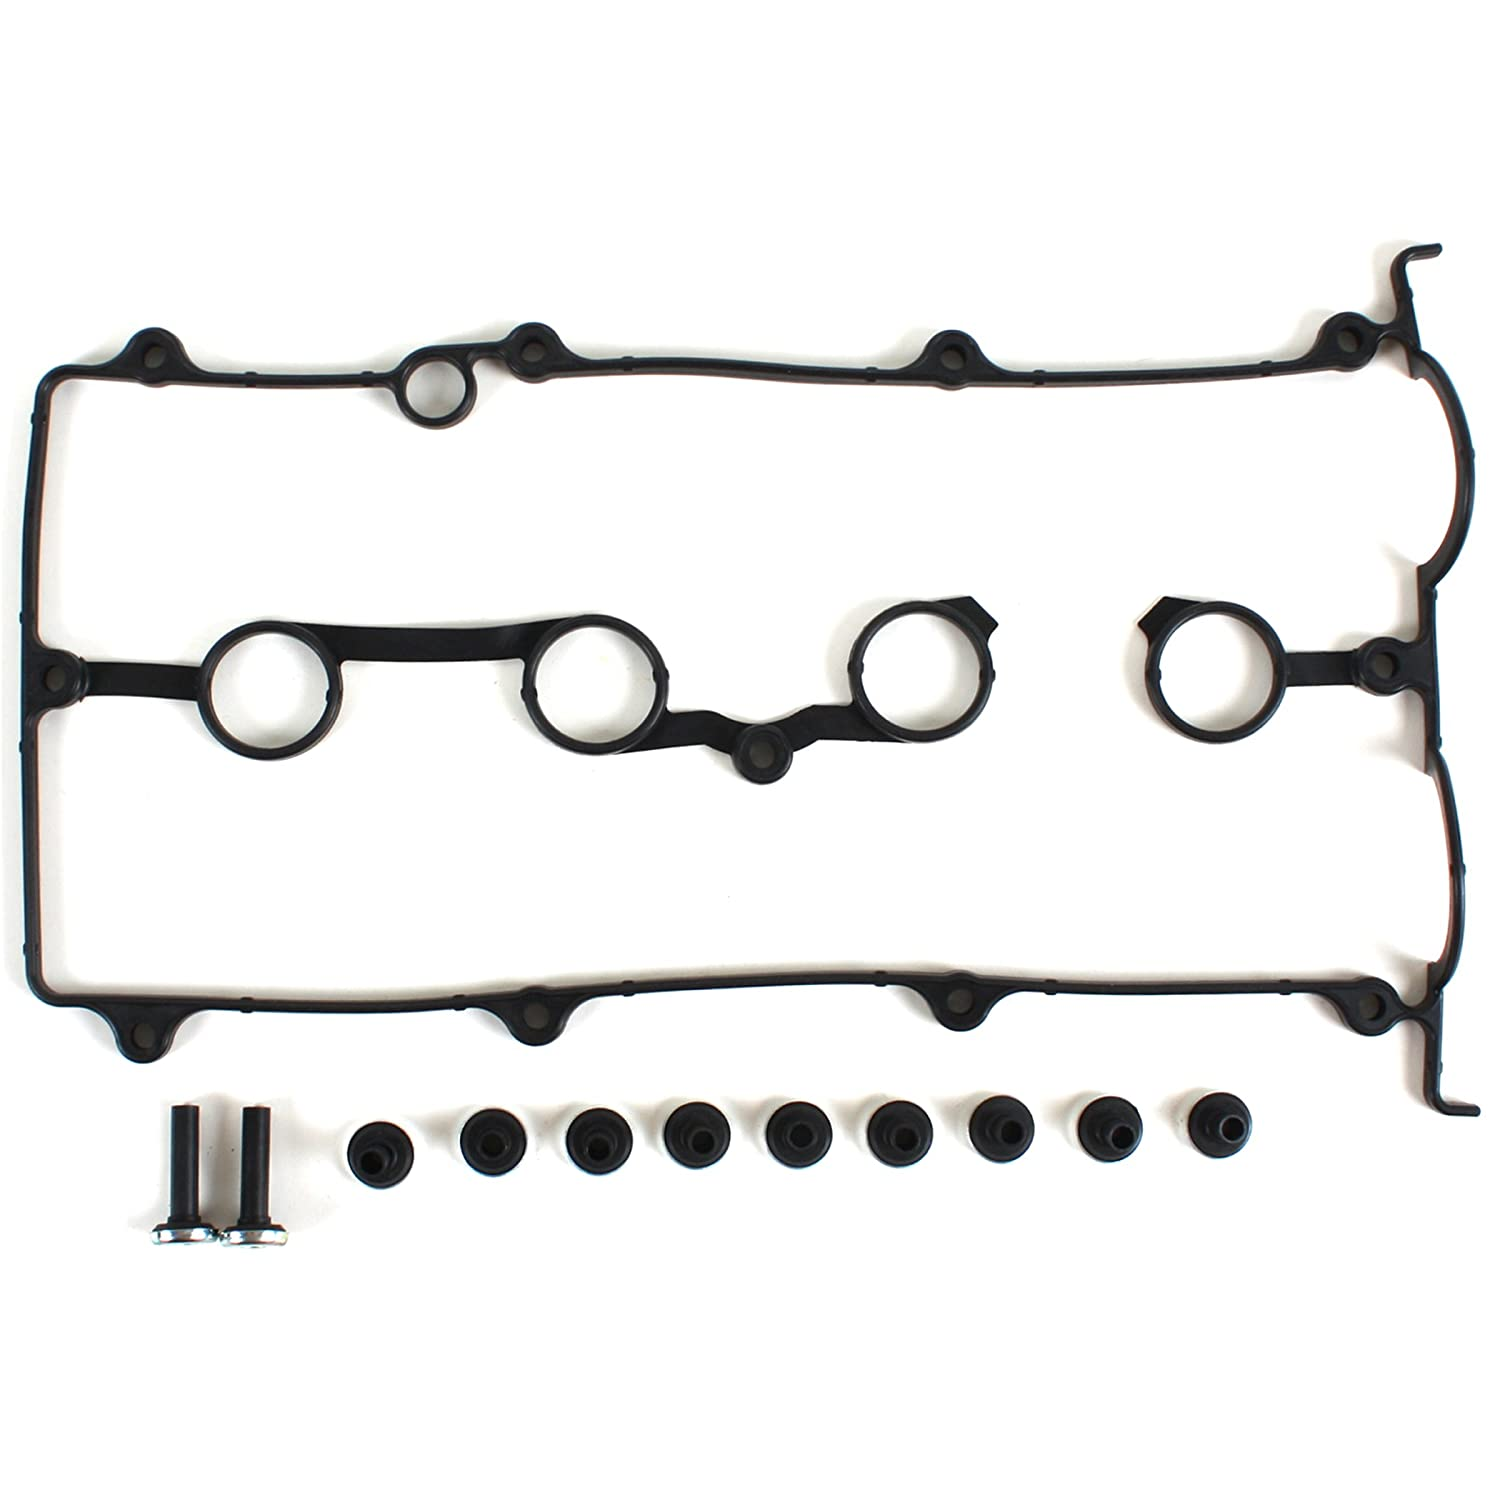 NEW VC440 Engine Valve Cover Gasket Set (w/ Spark Plug Seal and Grommets) for Mazda DOHC L4 1.8L FP & 2.0L 626 FS engine models 98-03 CNS EngineParts